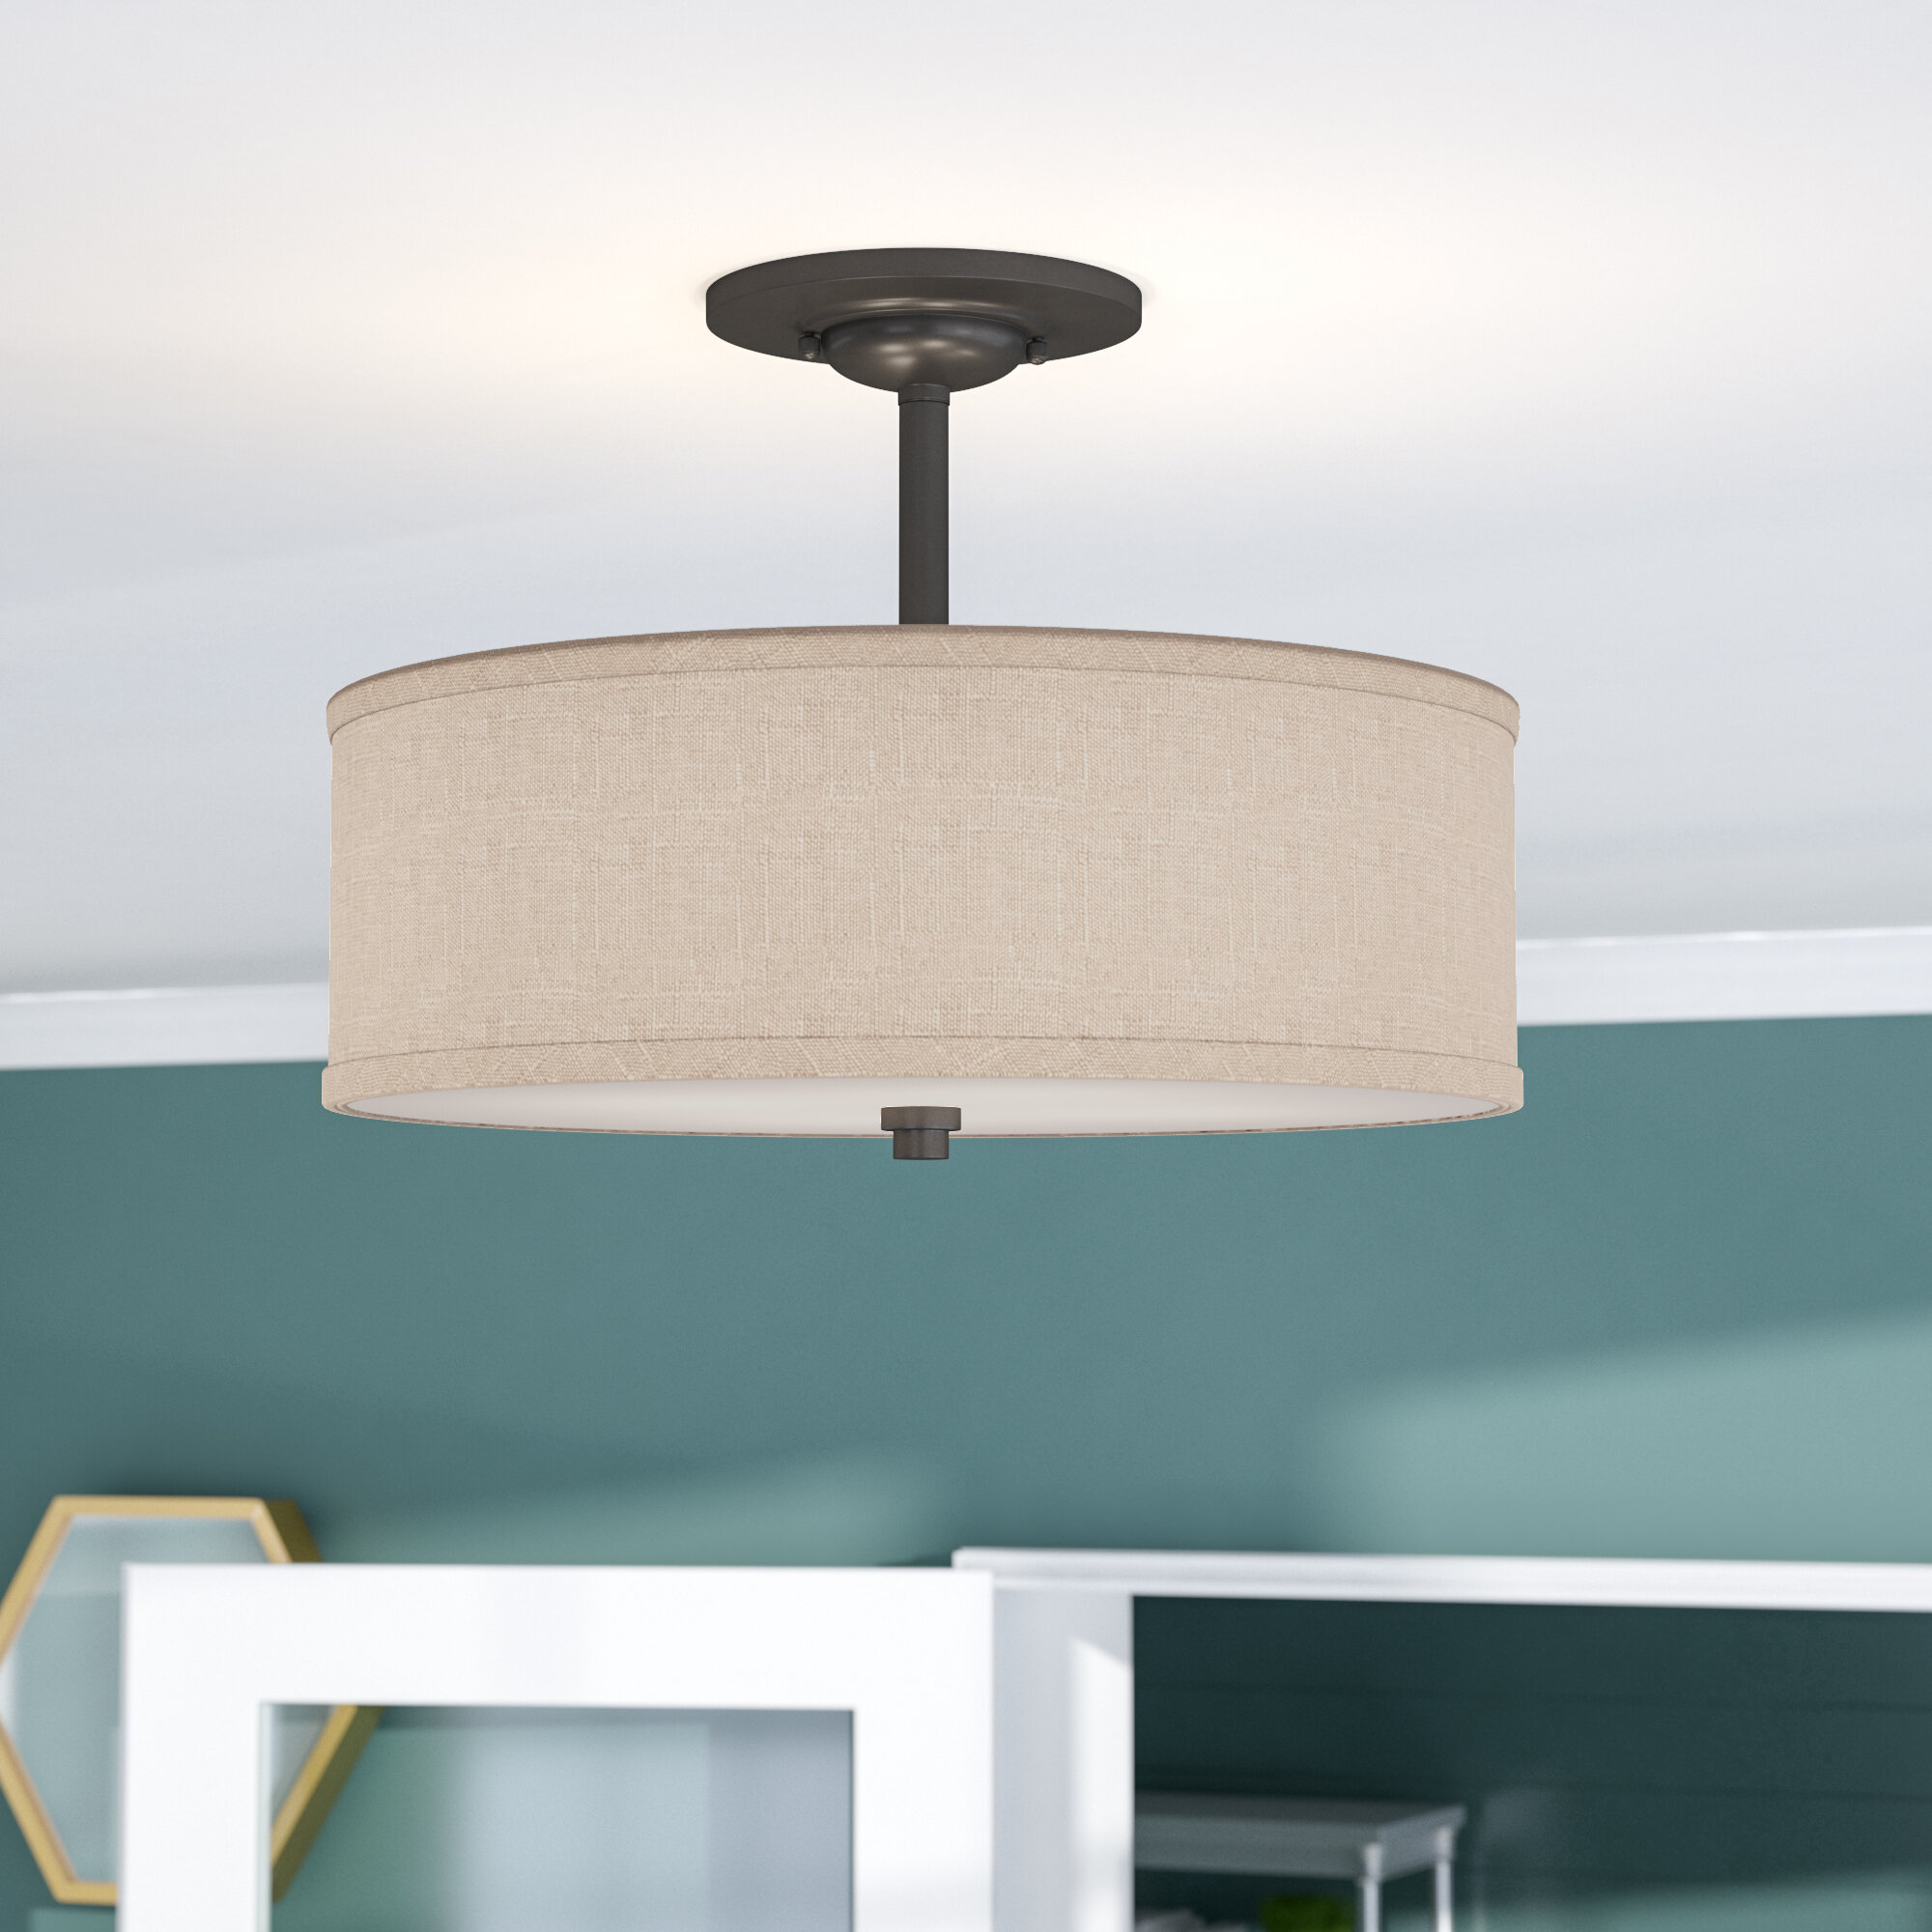 Brayden Studio Havens 3-Light Semi Flush Mount & Reviews | Wayfair